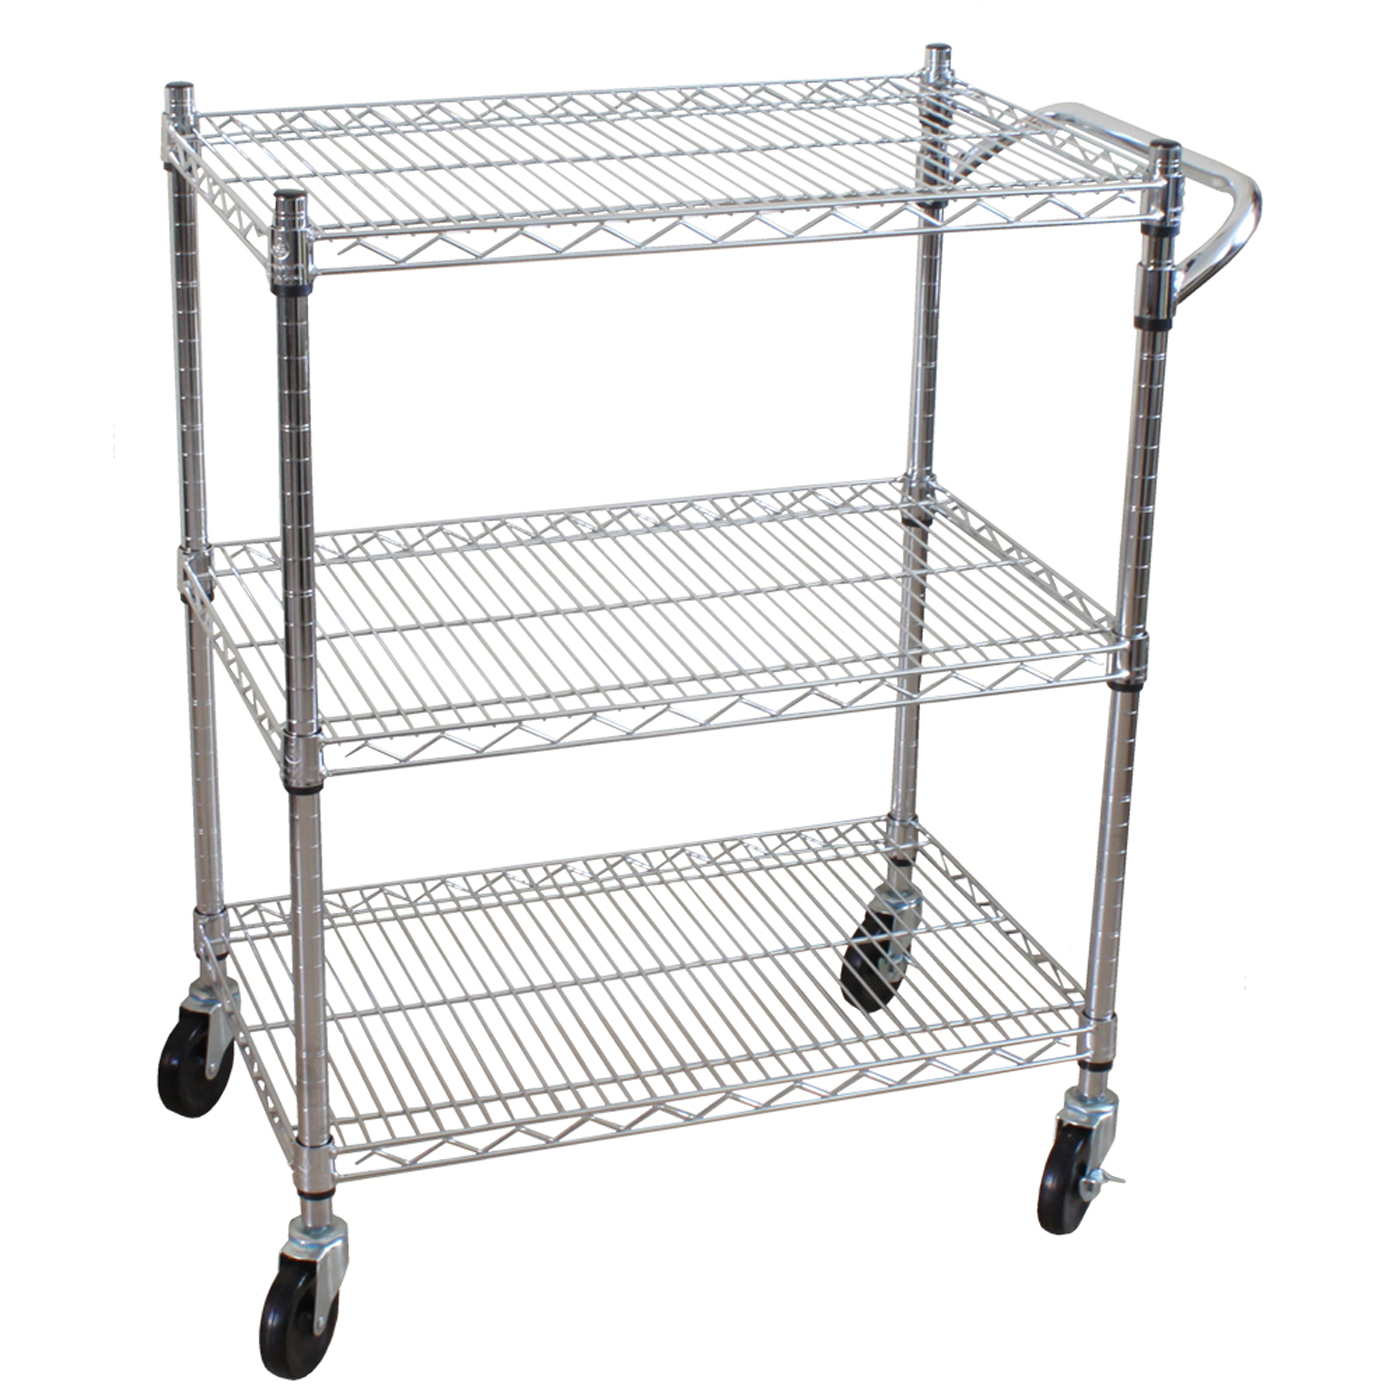 3 Tier Heavy Duty All Purpose Utility Cart By Oceanstar In